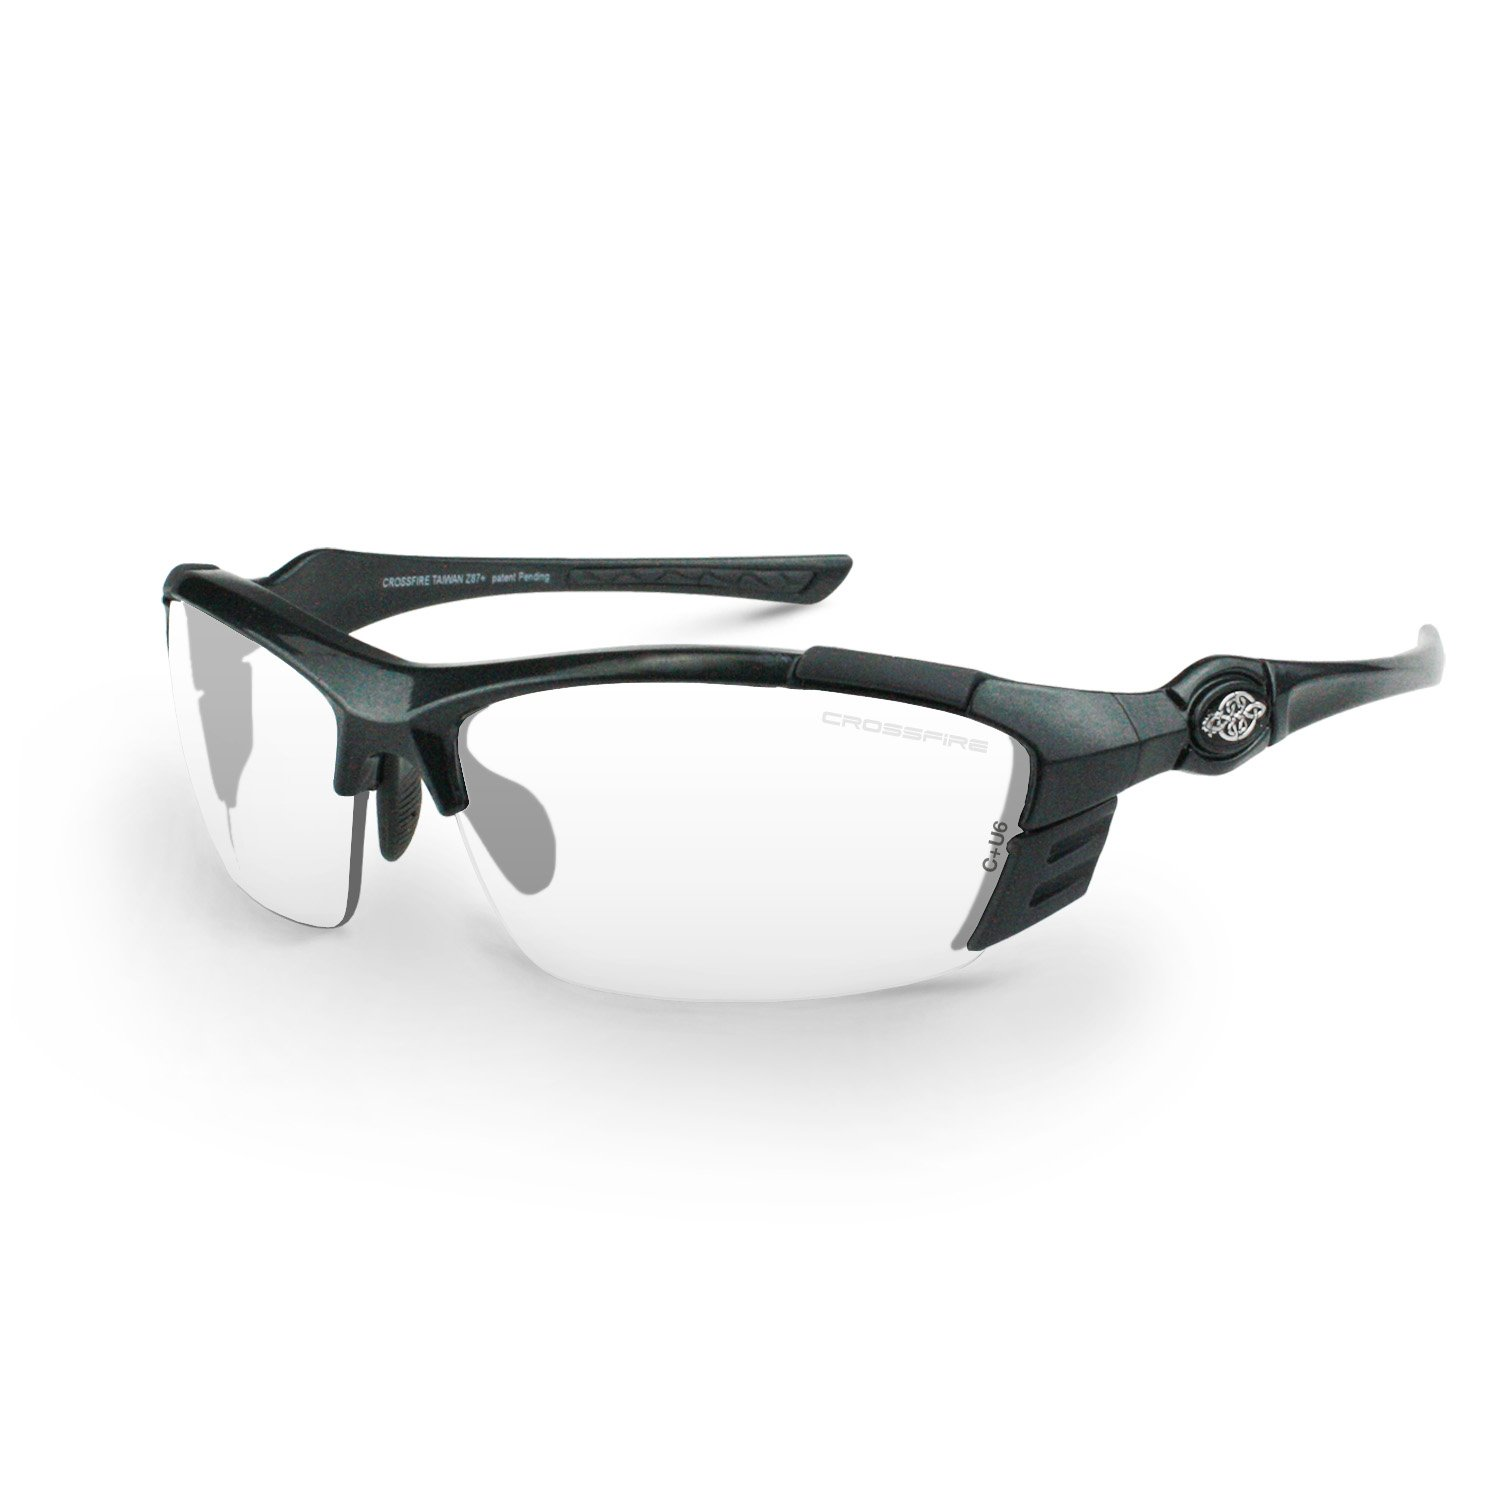 Crossfire Eyewear 3664 TL11 Safety Glasses with Pearl Grey Frame and Clear Lens